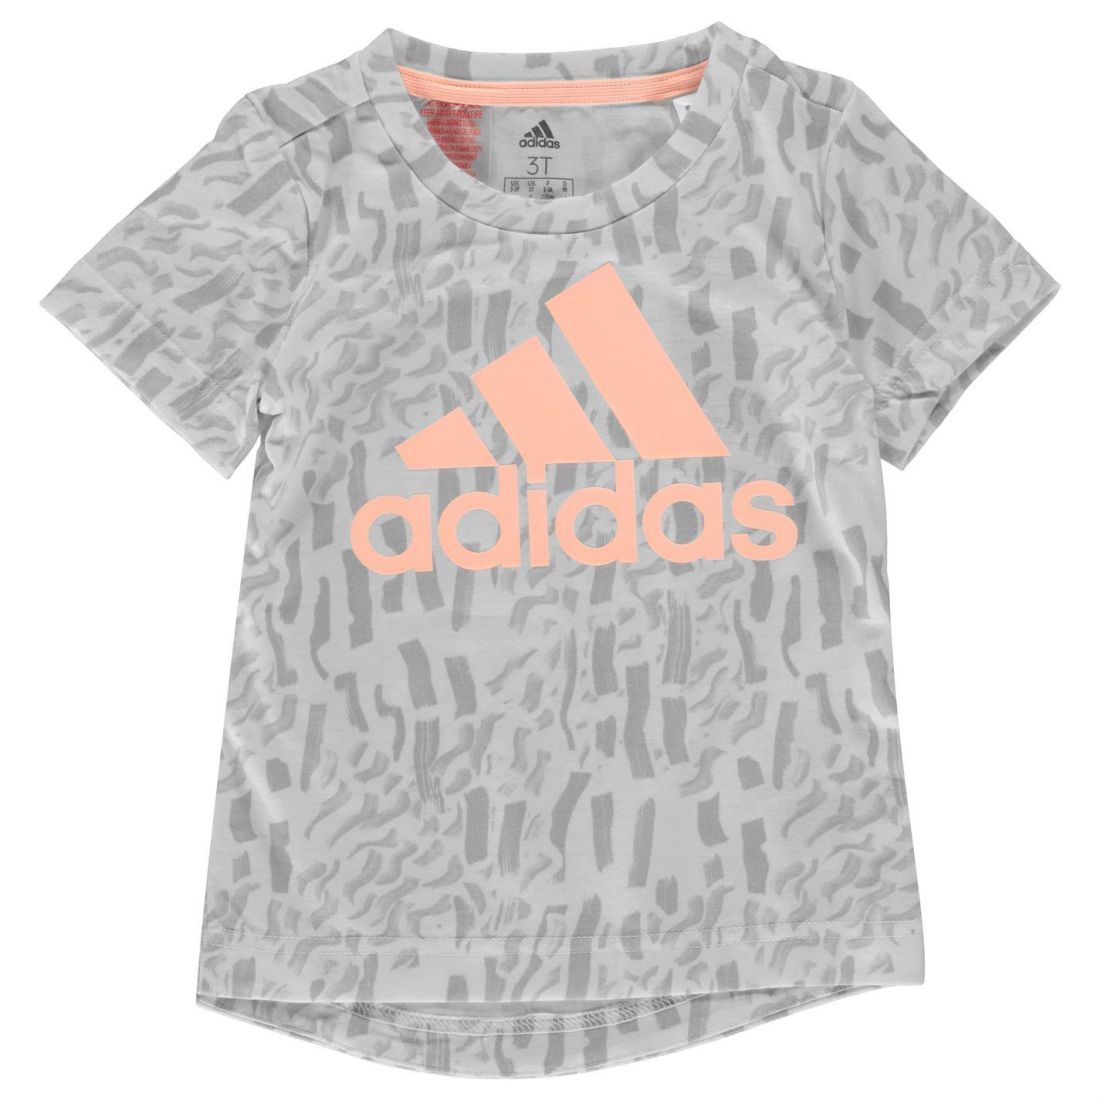 adidas Youth Boys Climalite Short Sleeve Performance Tee